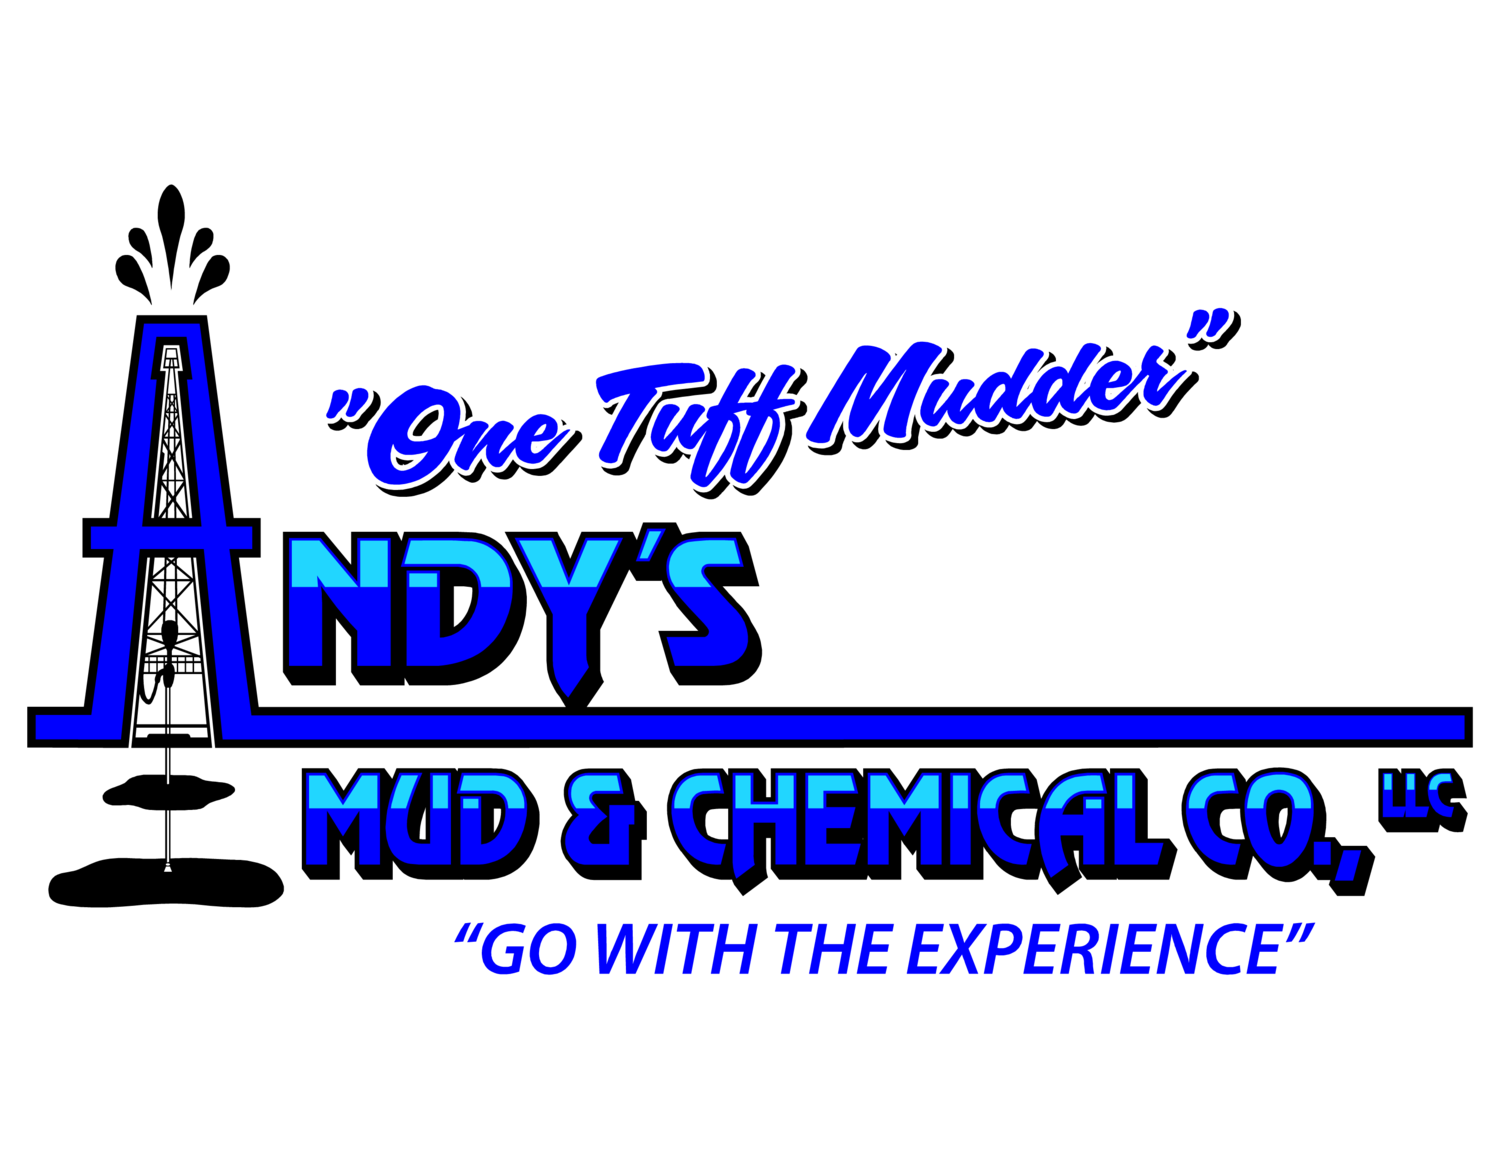 Andy's Mud & Chemical Co., LLC